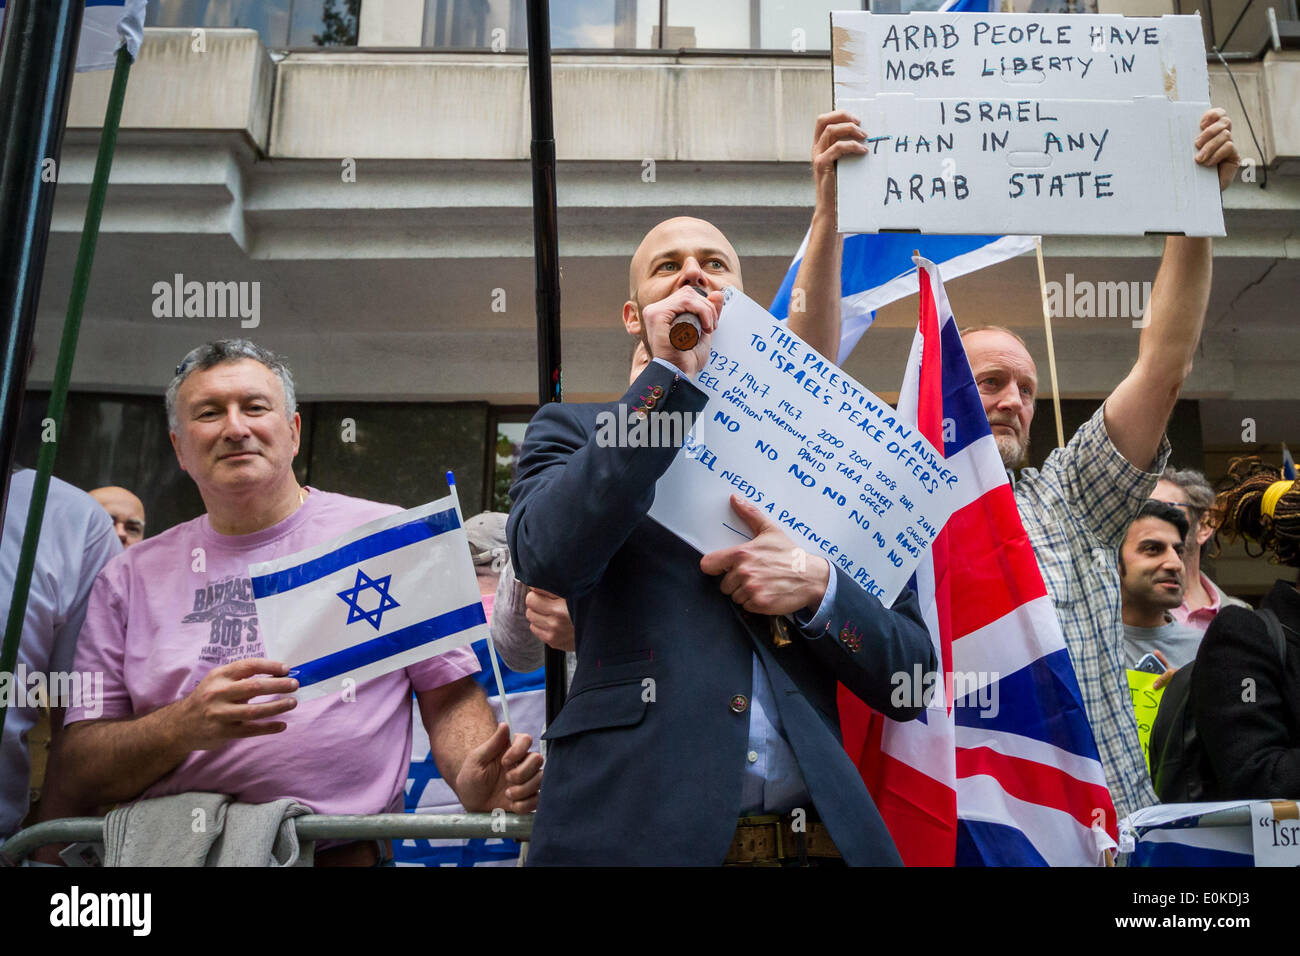 London, UK. 15th May, 2014. Pro-Israelis on Nakba Day welcome Tzipi Livni at JNF Event in London Credit:  Guy Corbishley/Alamy Live News - Stock Image